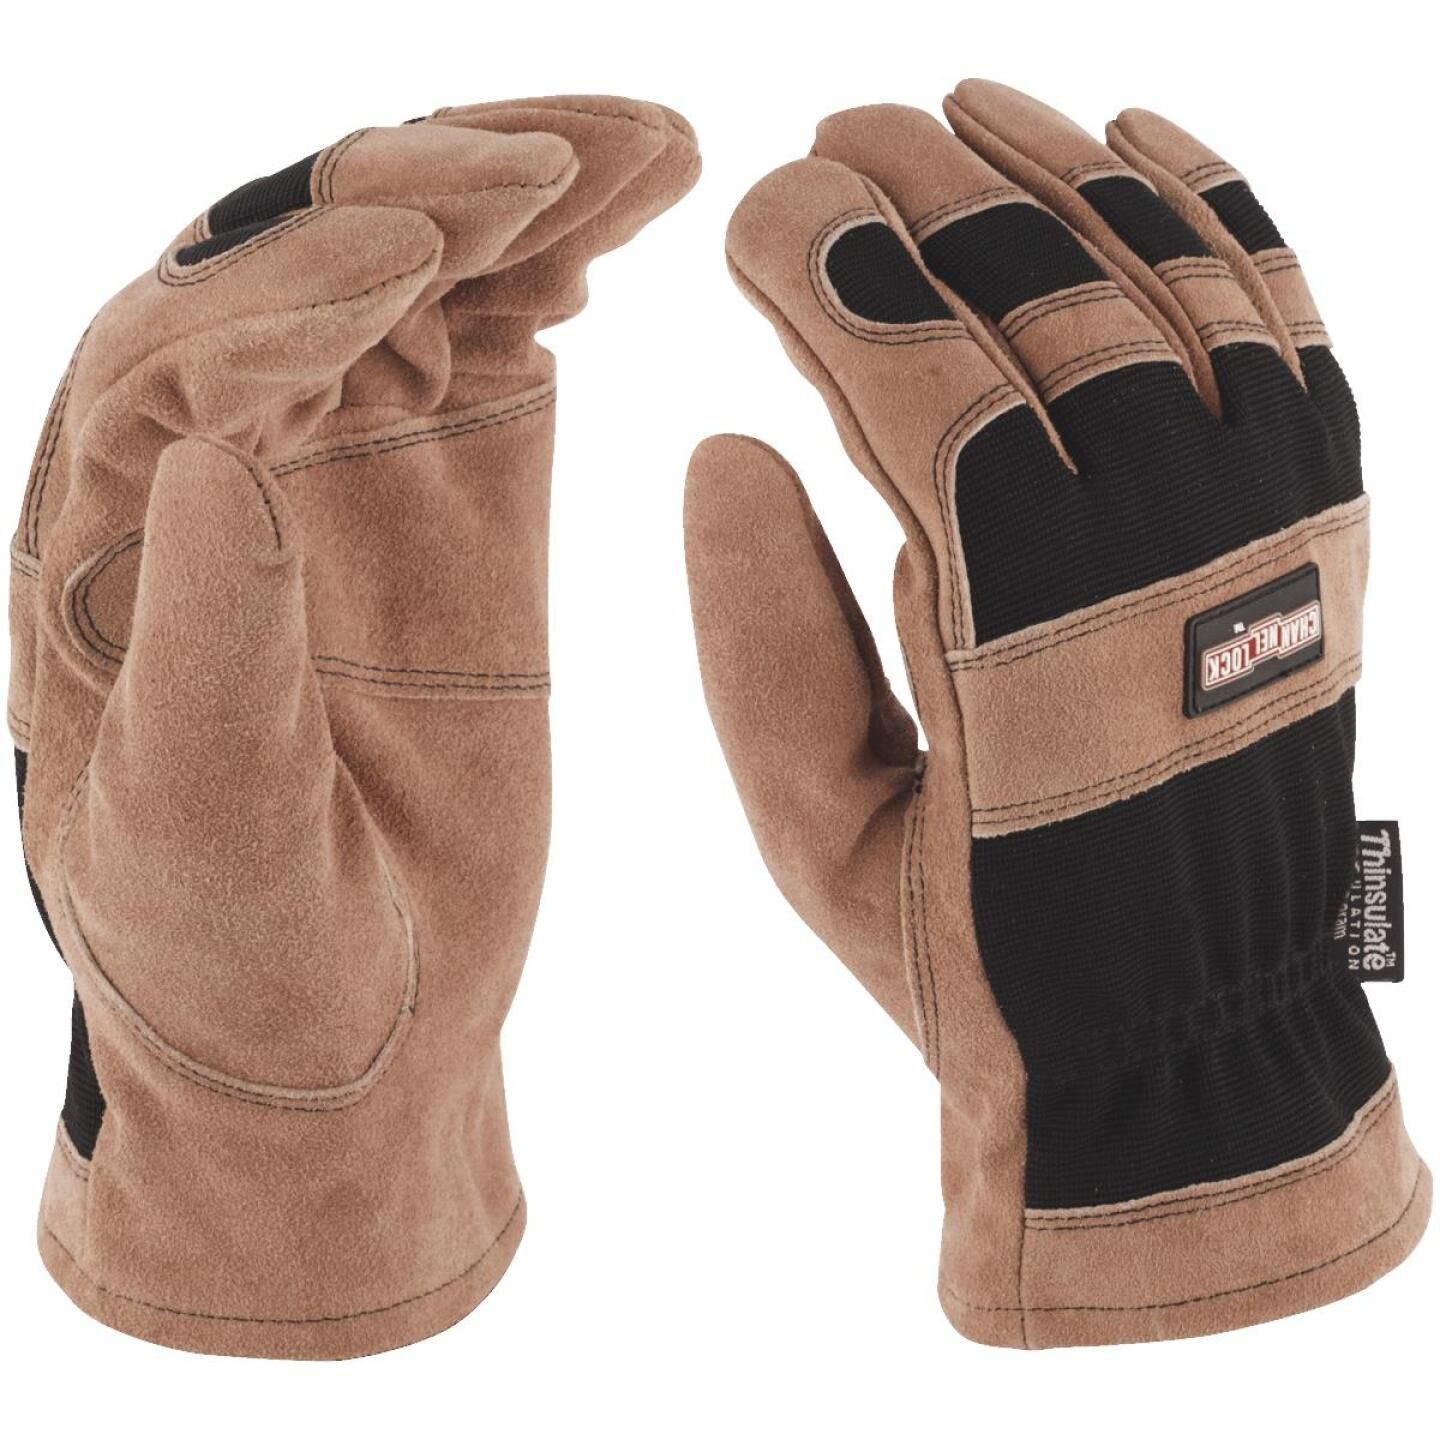 Channellock Men's Large Leather Winter Work Glove Image 2